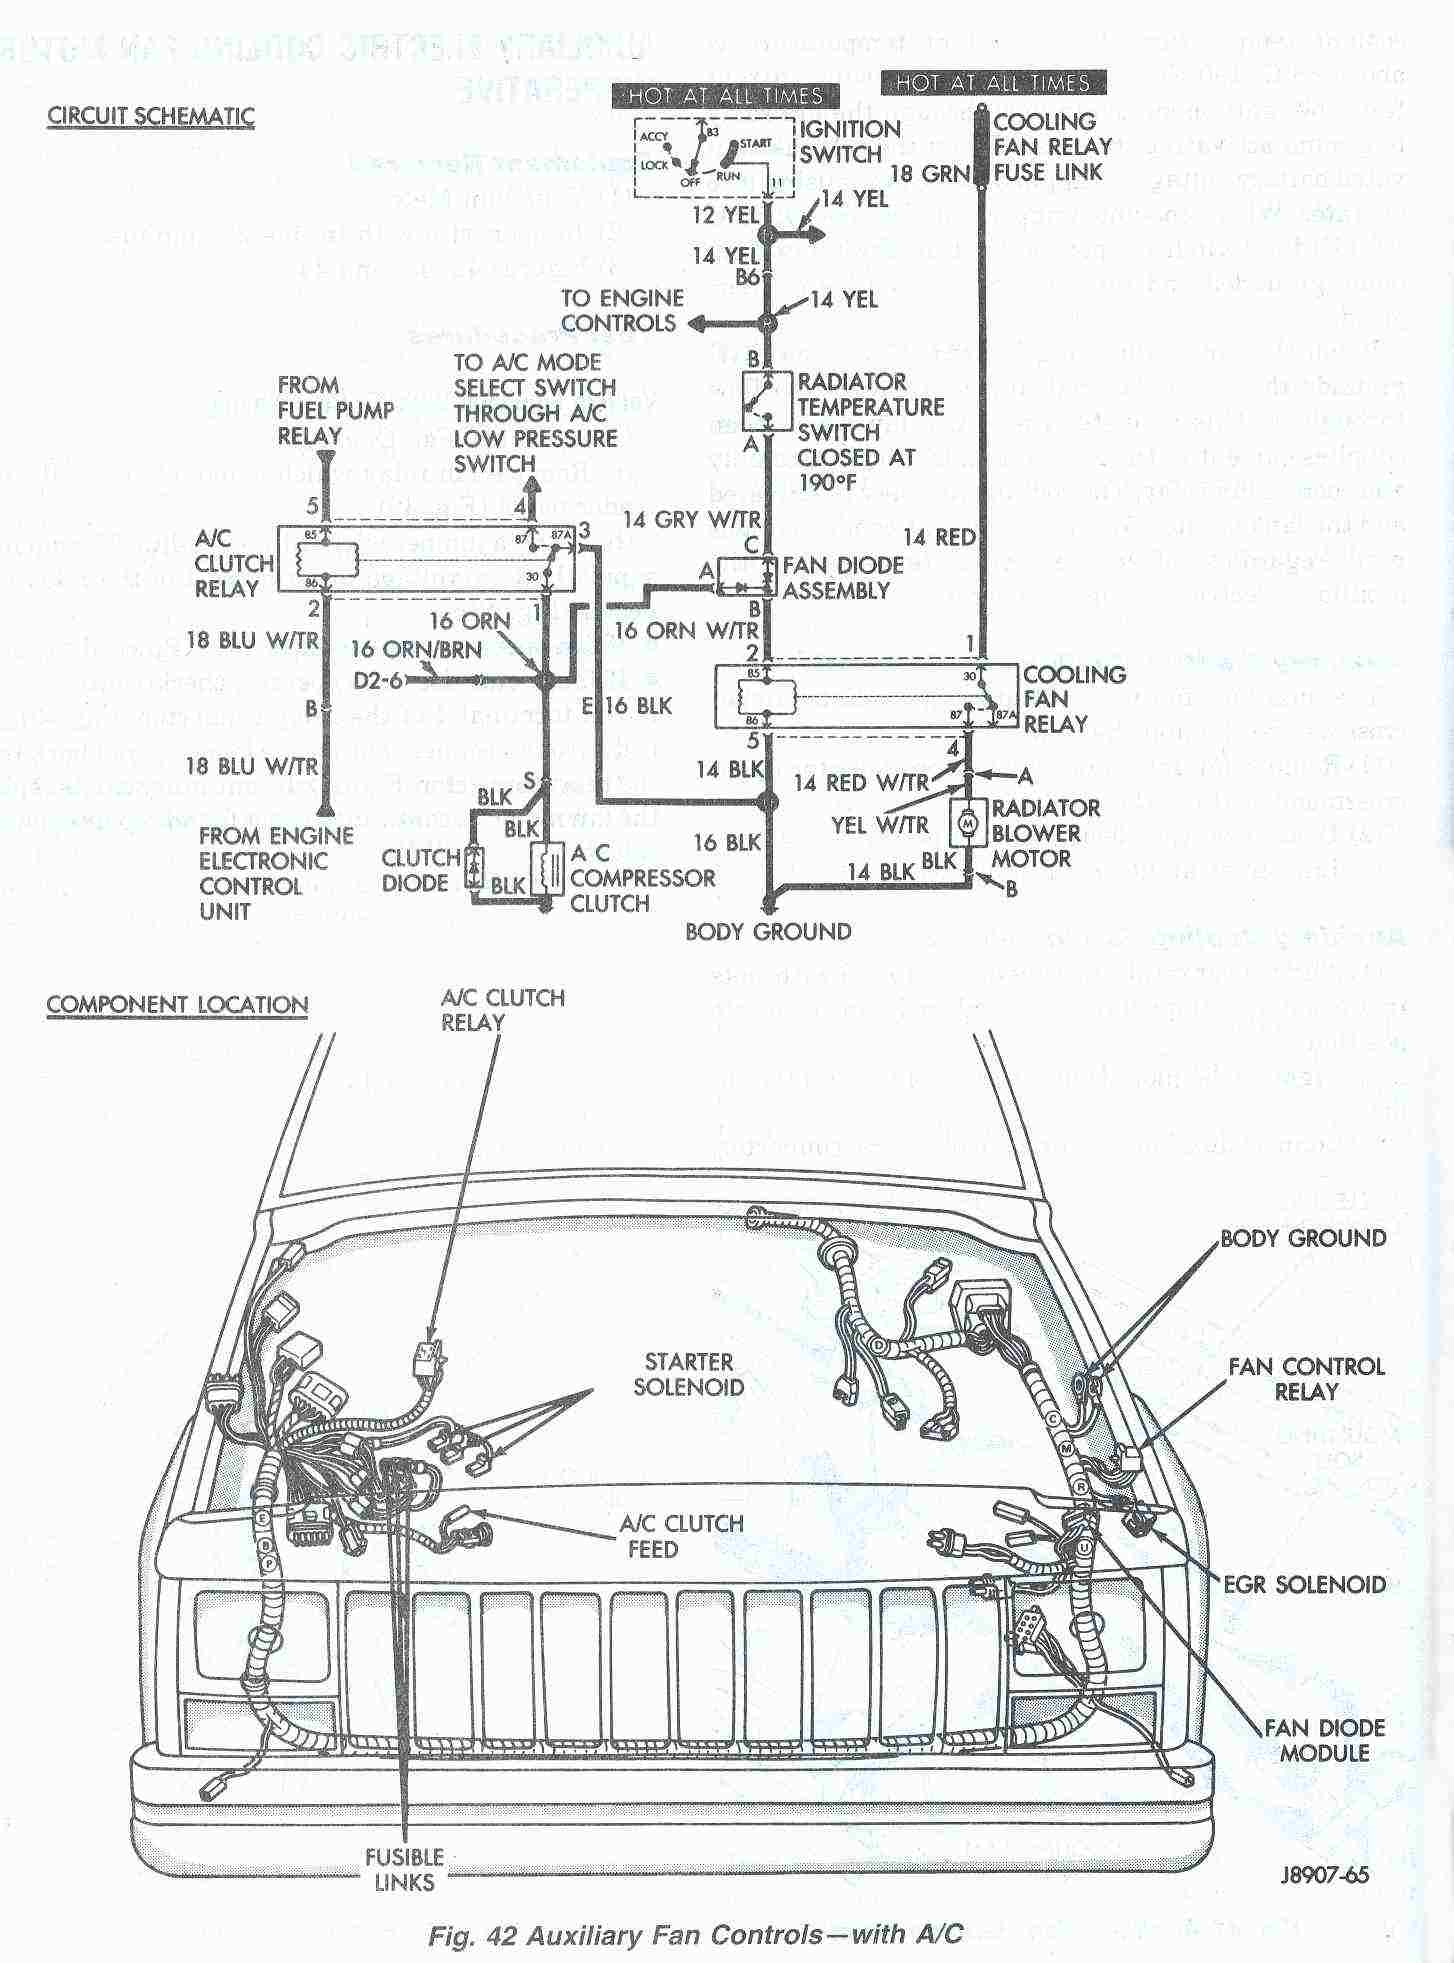 jeep cherokee cooling fan wiring diagram daisy chain light jeep cherokee cooling system electric cooling fan auxiliary fan schematic fig 42 electric fan diagnosishtm 2000 jeep cherokee cooling fan wiring diagram